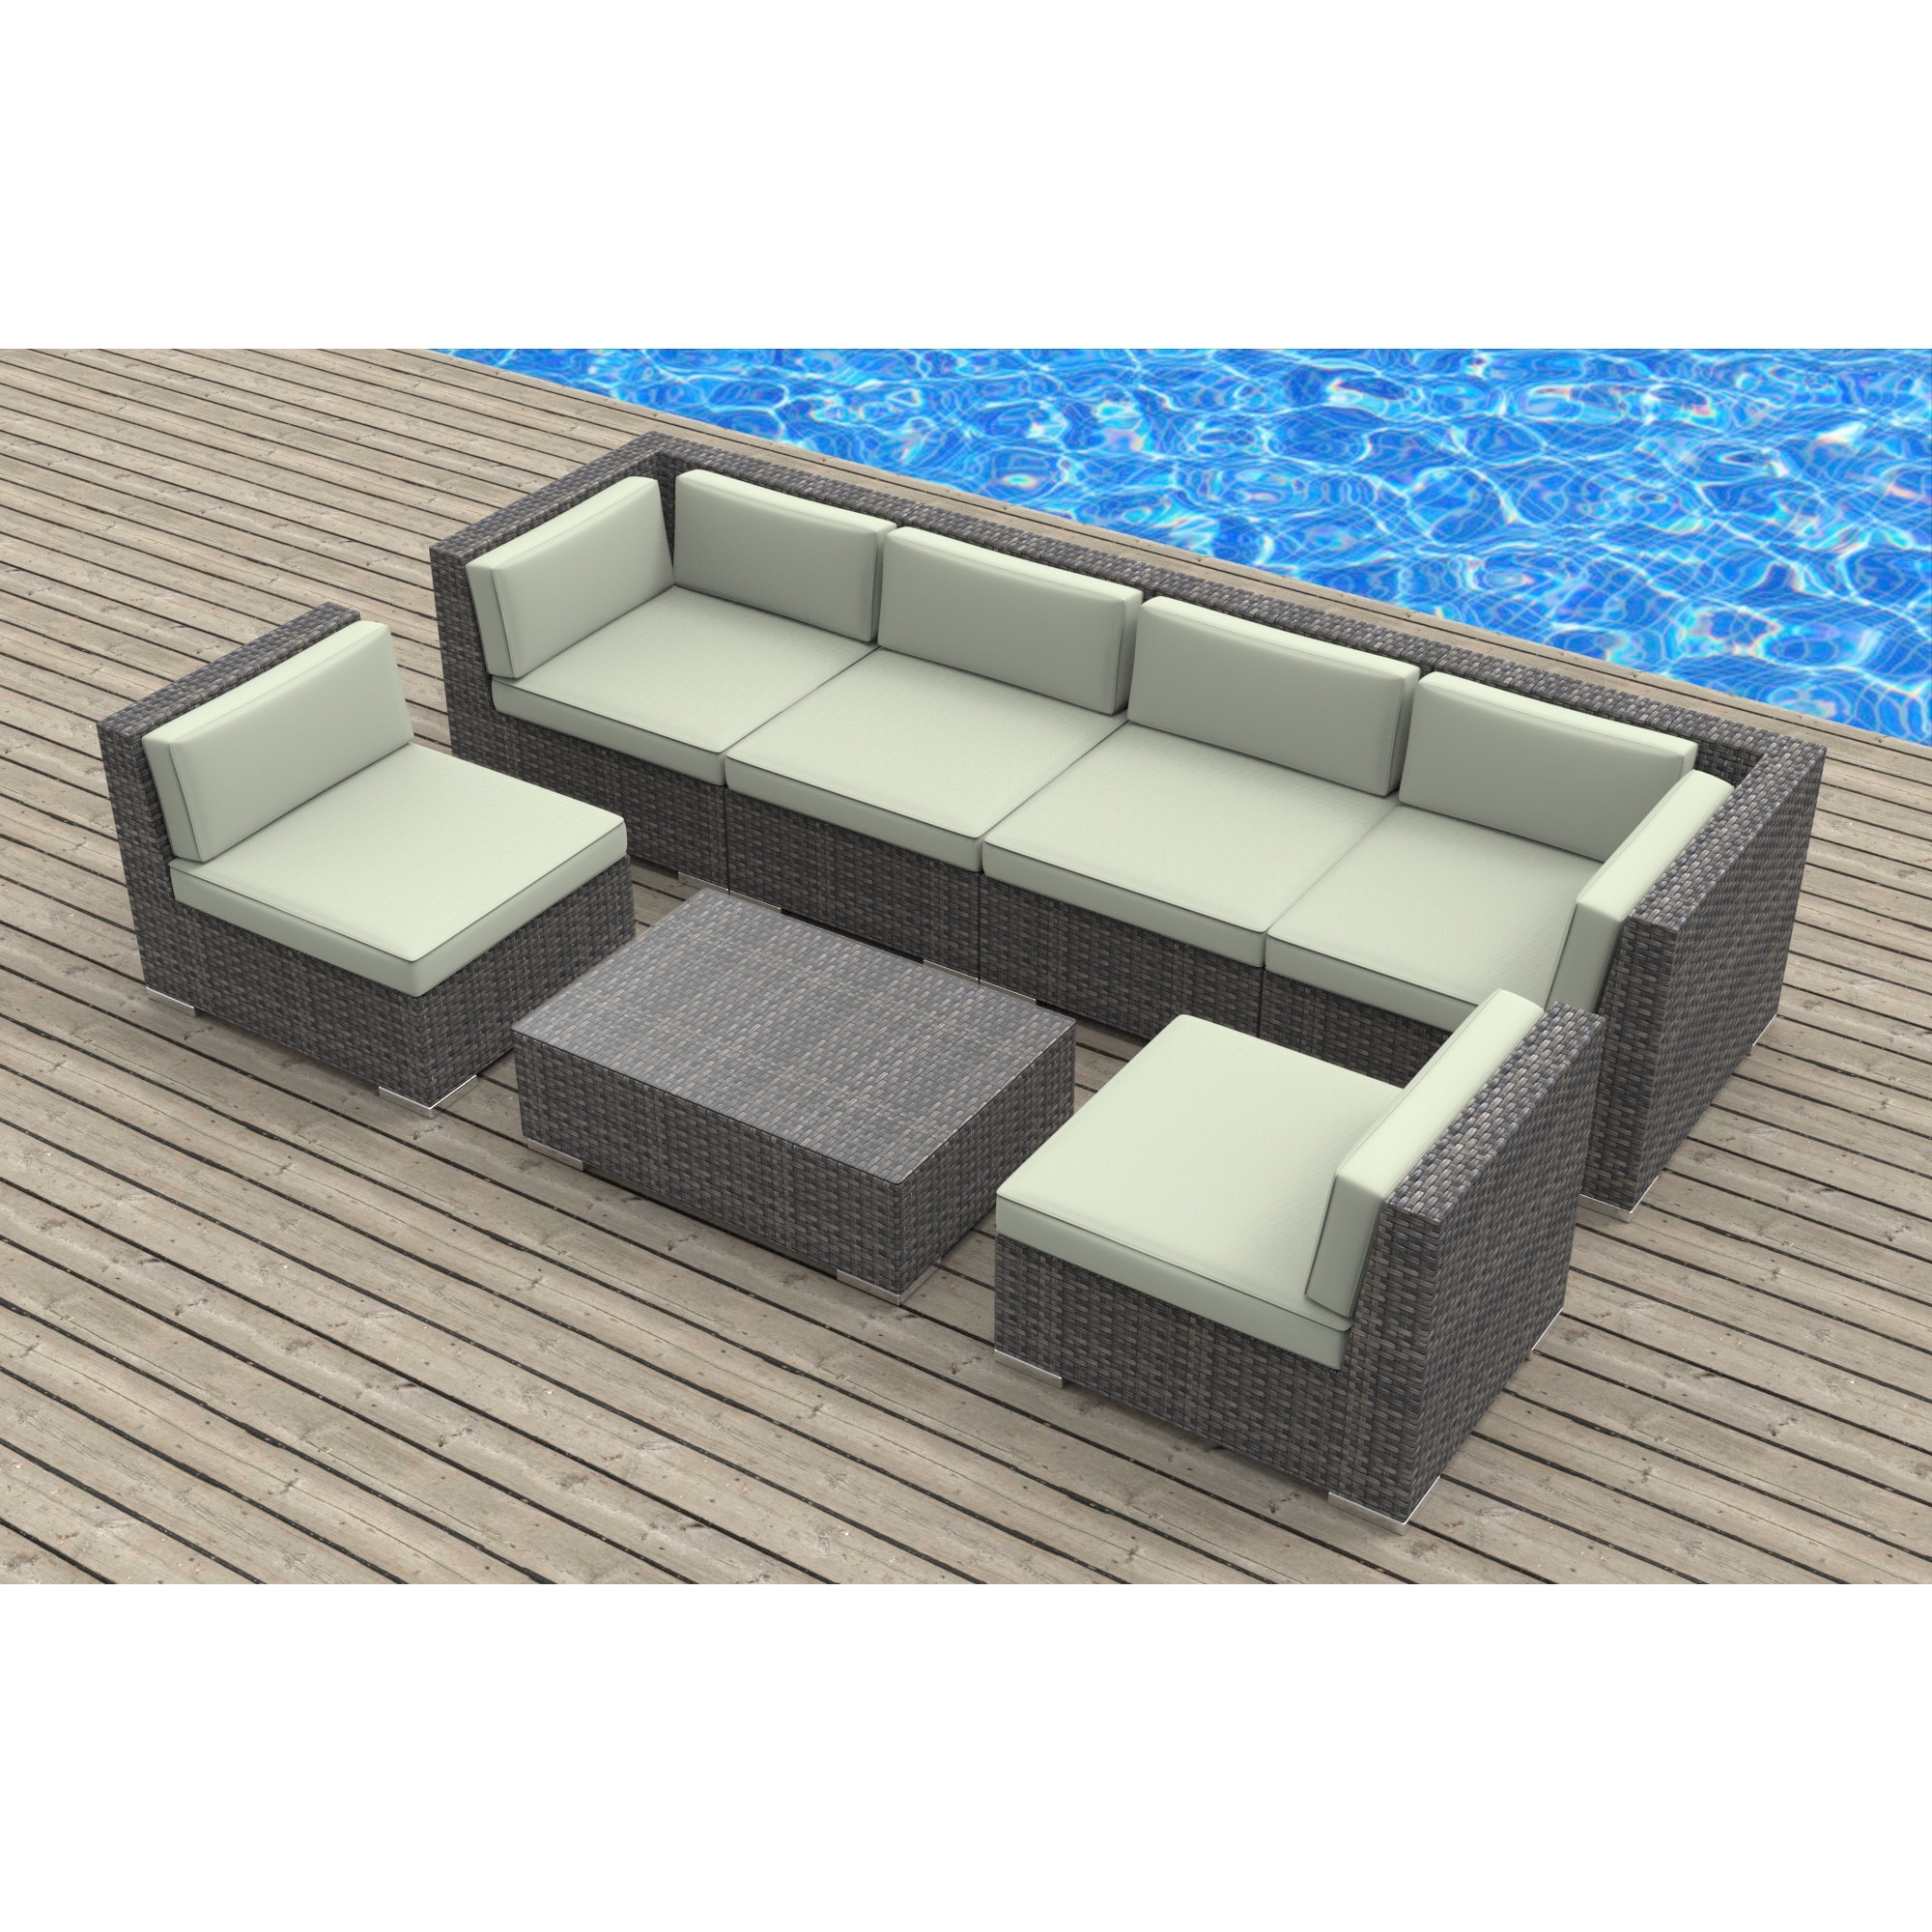 Gentil Shop Urban Furnishing Oahu Wicker/Rattan 7 Piece Sectional Sofa Outdoor  Patio Furniture Set   Free Shipping Today   Overstock.com   12014794